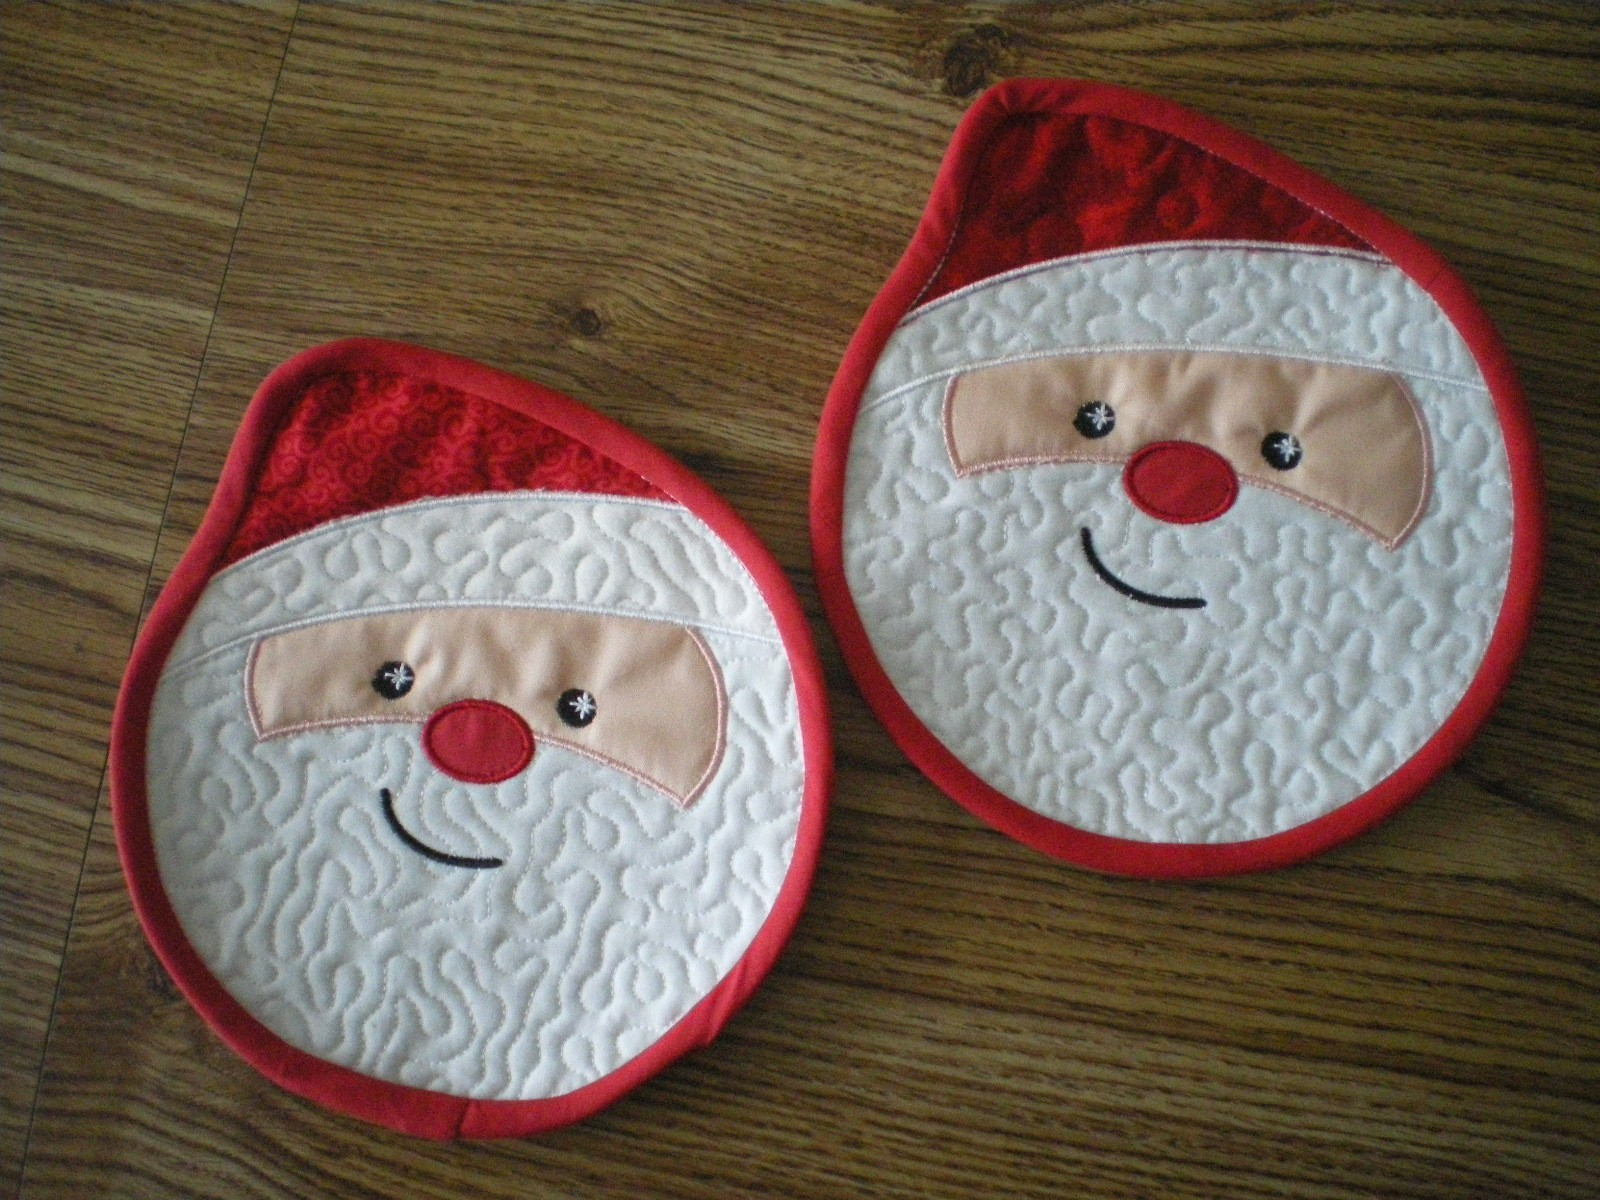 Cute Embroidery Patterns Free Embroidery Designs Cute Embroidery Designs Best Of Mug Rugs